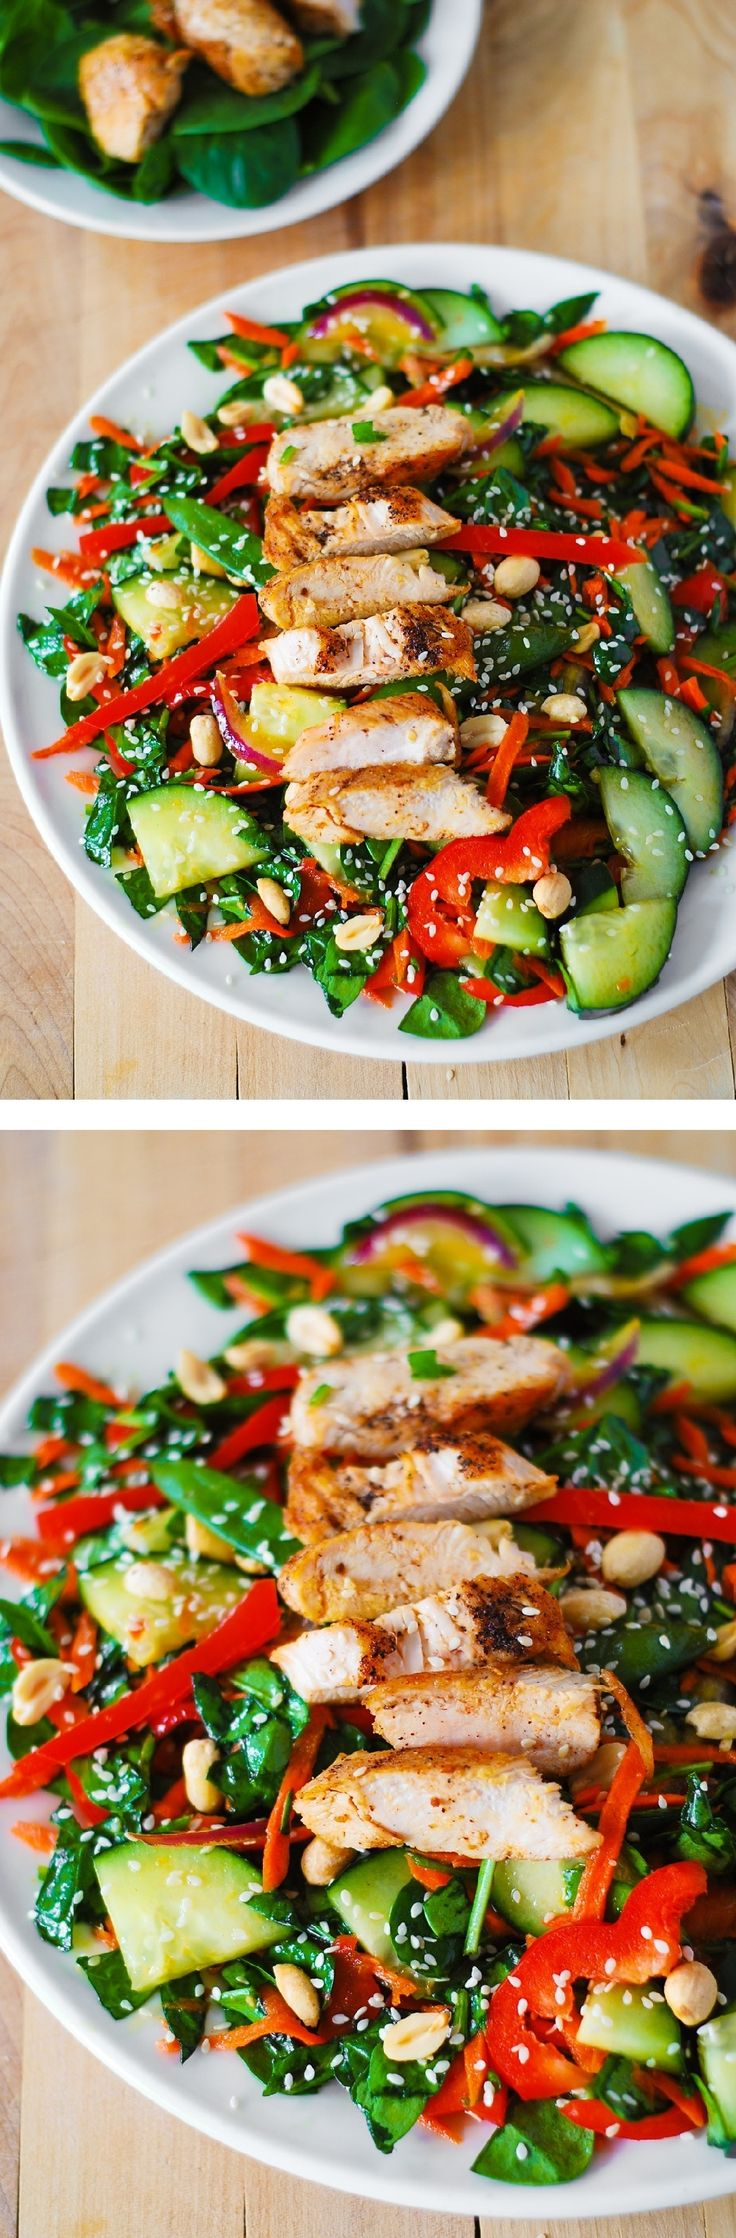 Crunchy Asian Salad with Chicken and homemade Sesame Peanut Dressing – gluten free, healthy recipe! Lots of vegetables: spinach, cucumbers, red bell pepper, carrots, sugar snap peas – all tossed in a delicious, homemade peanut dressing, topped with grilled chicken, toasted peanuts and sesame seeds.